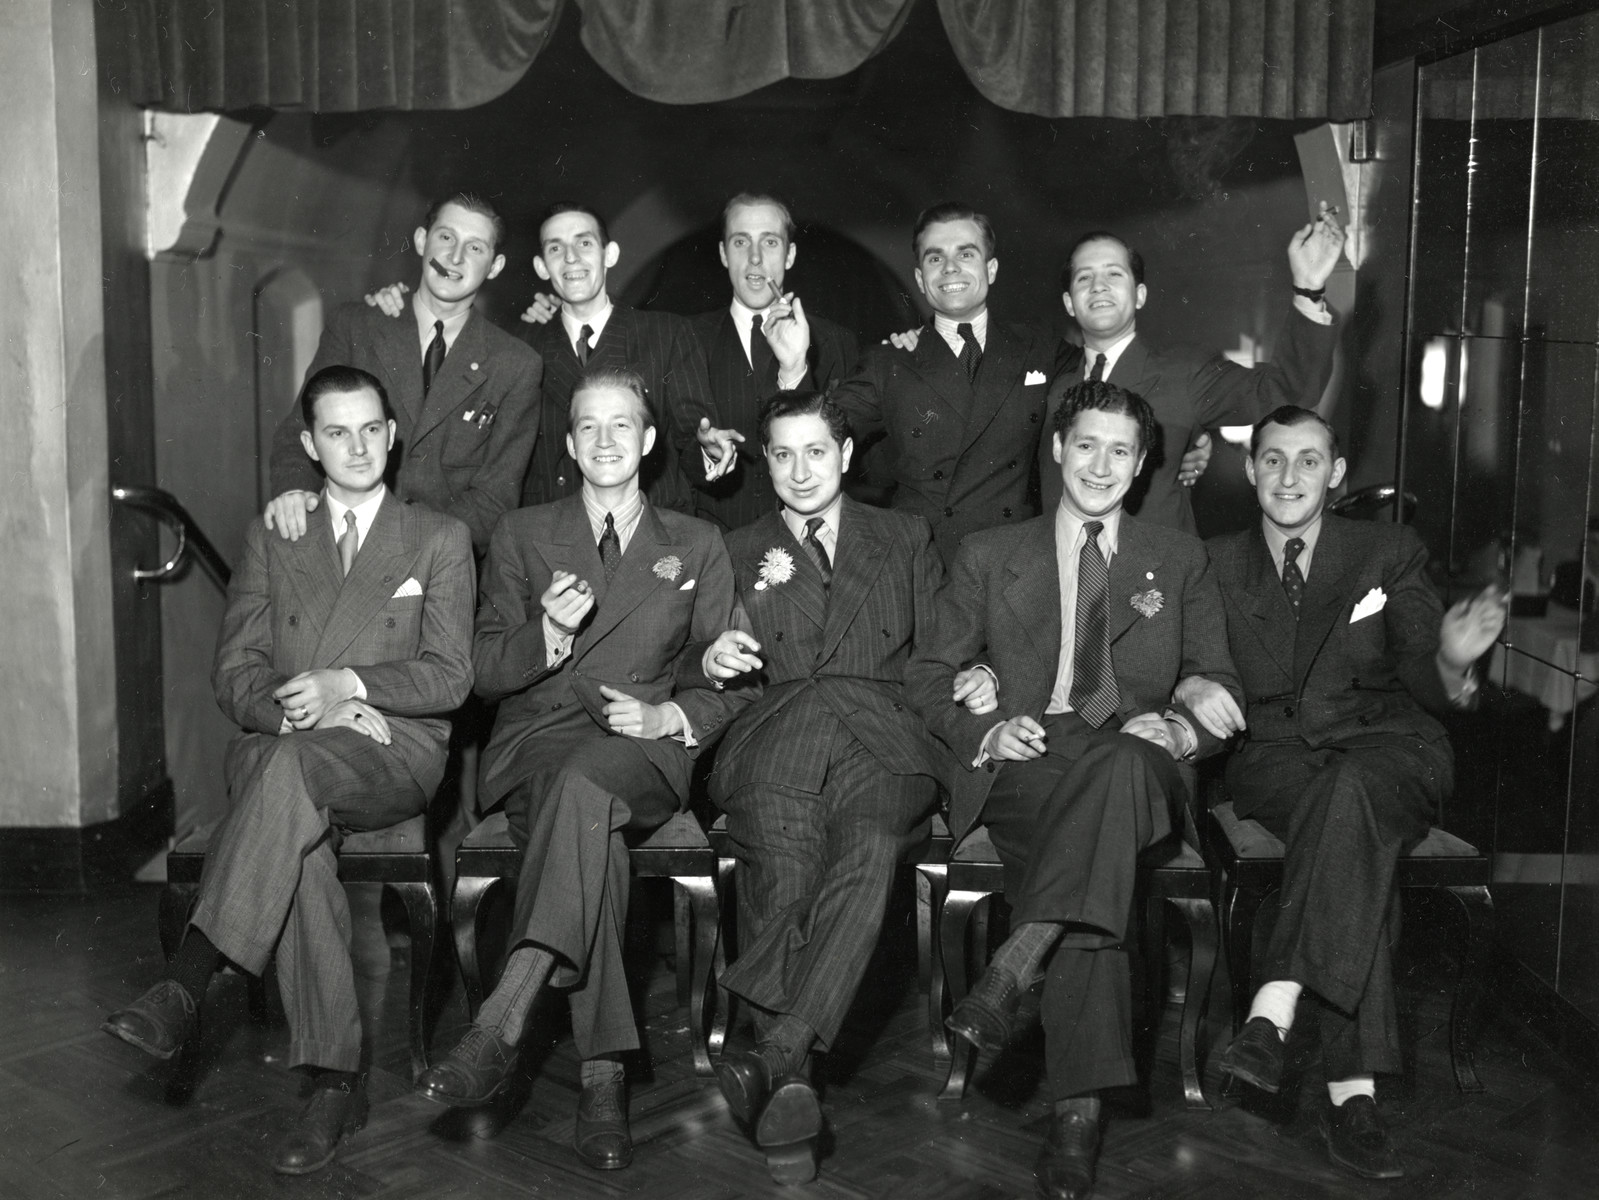 Group portrait of the members of the Judiska Ungdon, the Jewish social club in Malmo.  Elias Feigen is pictured in the front center.  His brother Bertil is to his right.  Hans Silver is seated on the far right.  Lennard Silwert is standing on the left.